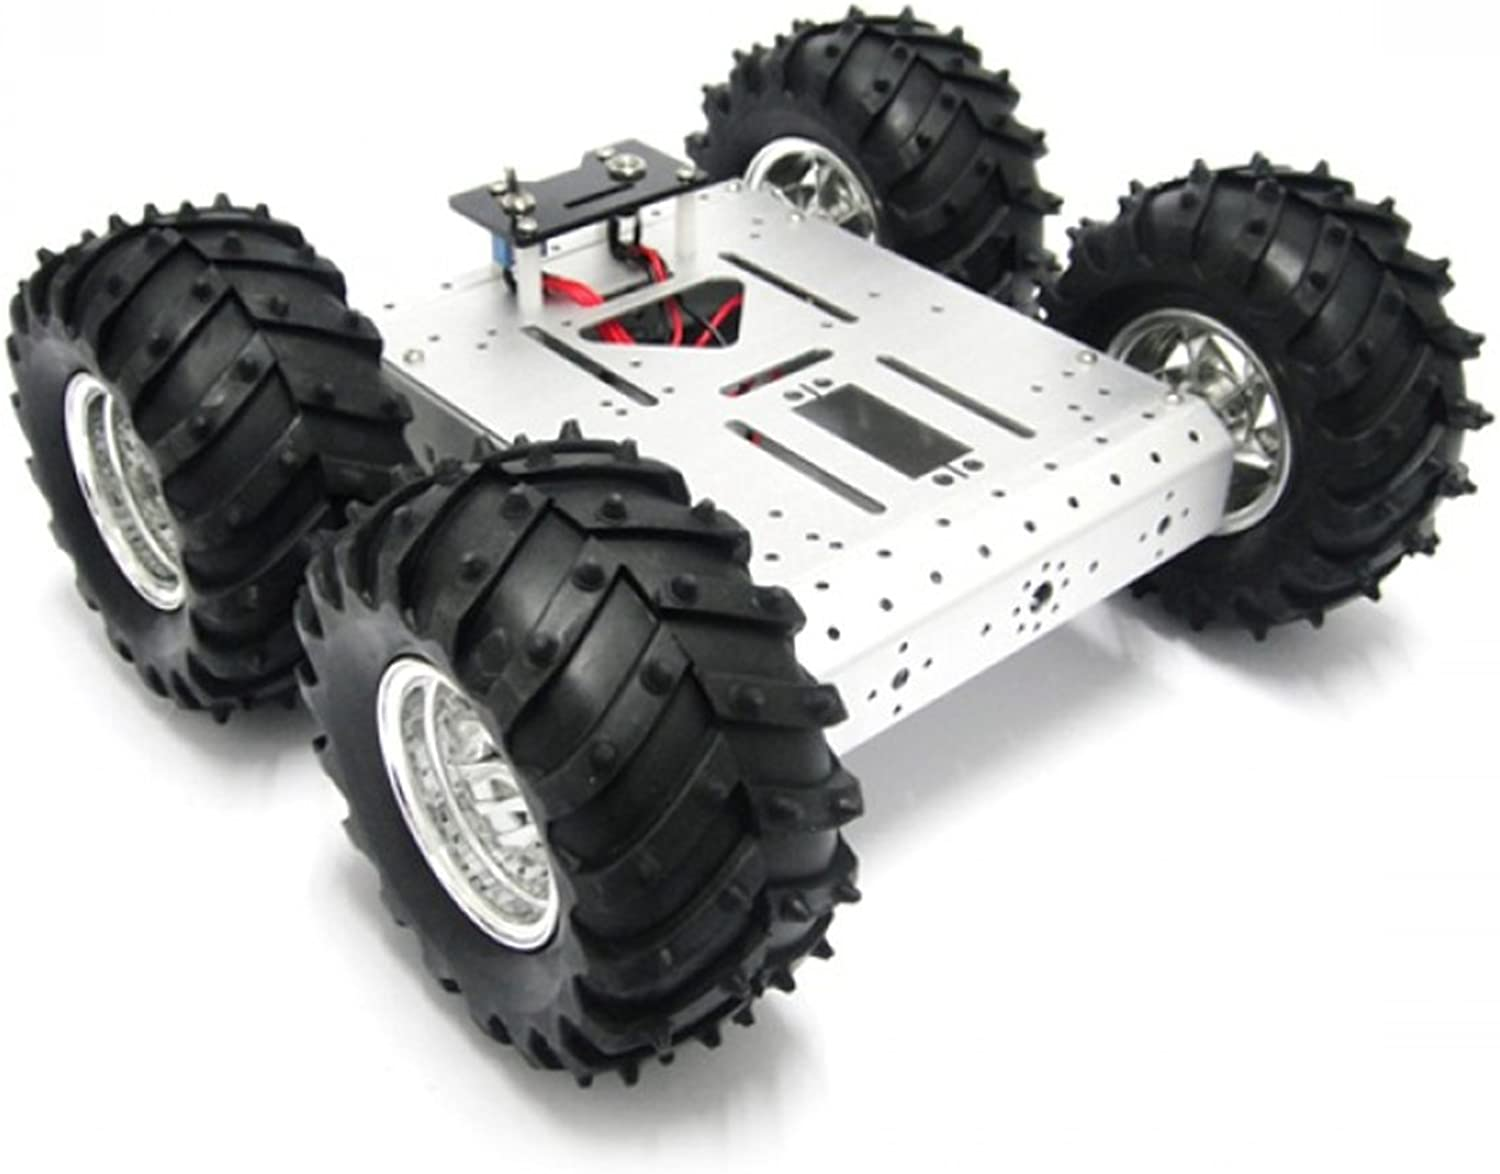 4WD Aluminum Mobile Robot Platform This platform can be equipped with a variety of controllers, drives, sensors and wireless radio frequency modules, etc.